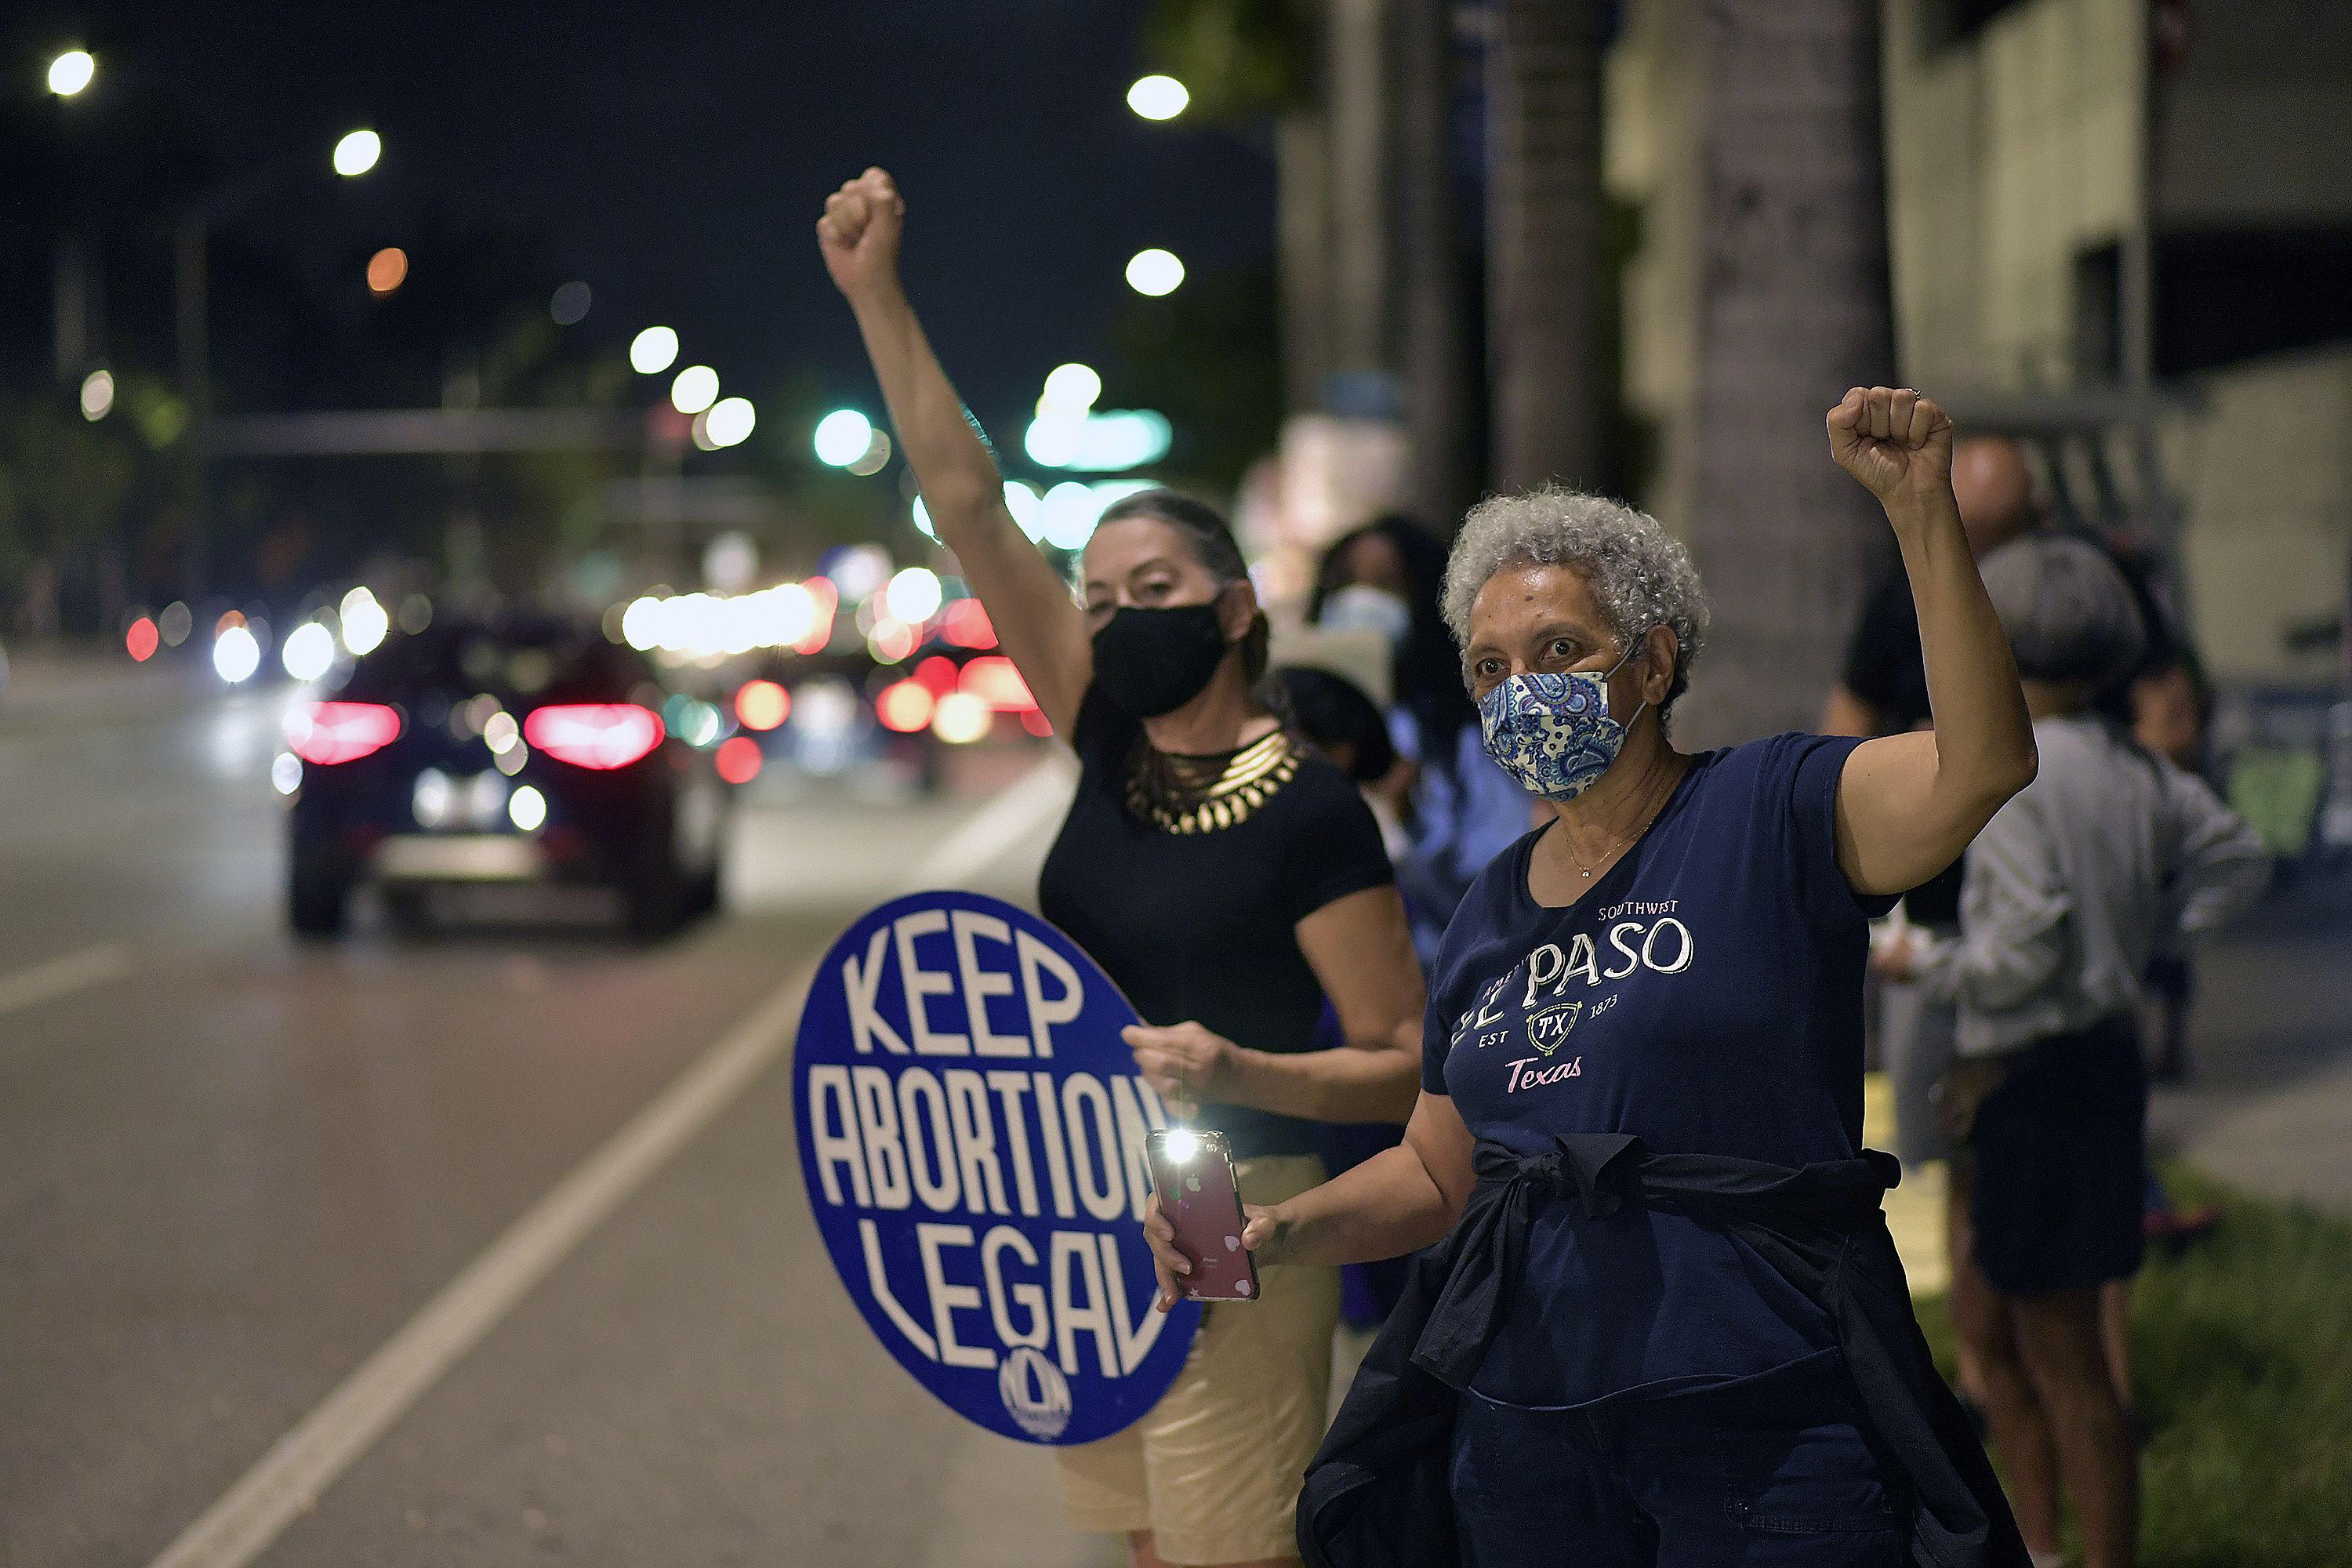 , Texas Effectively Banned Abortion. Florida Republicans Want to Be Next., Saubio Making Wealth